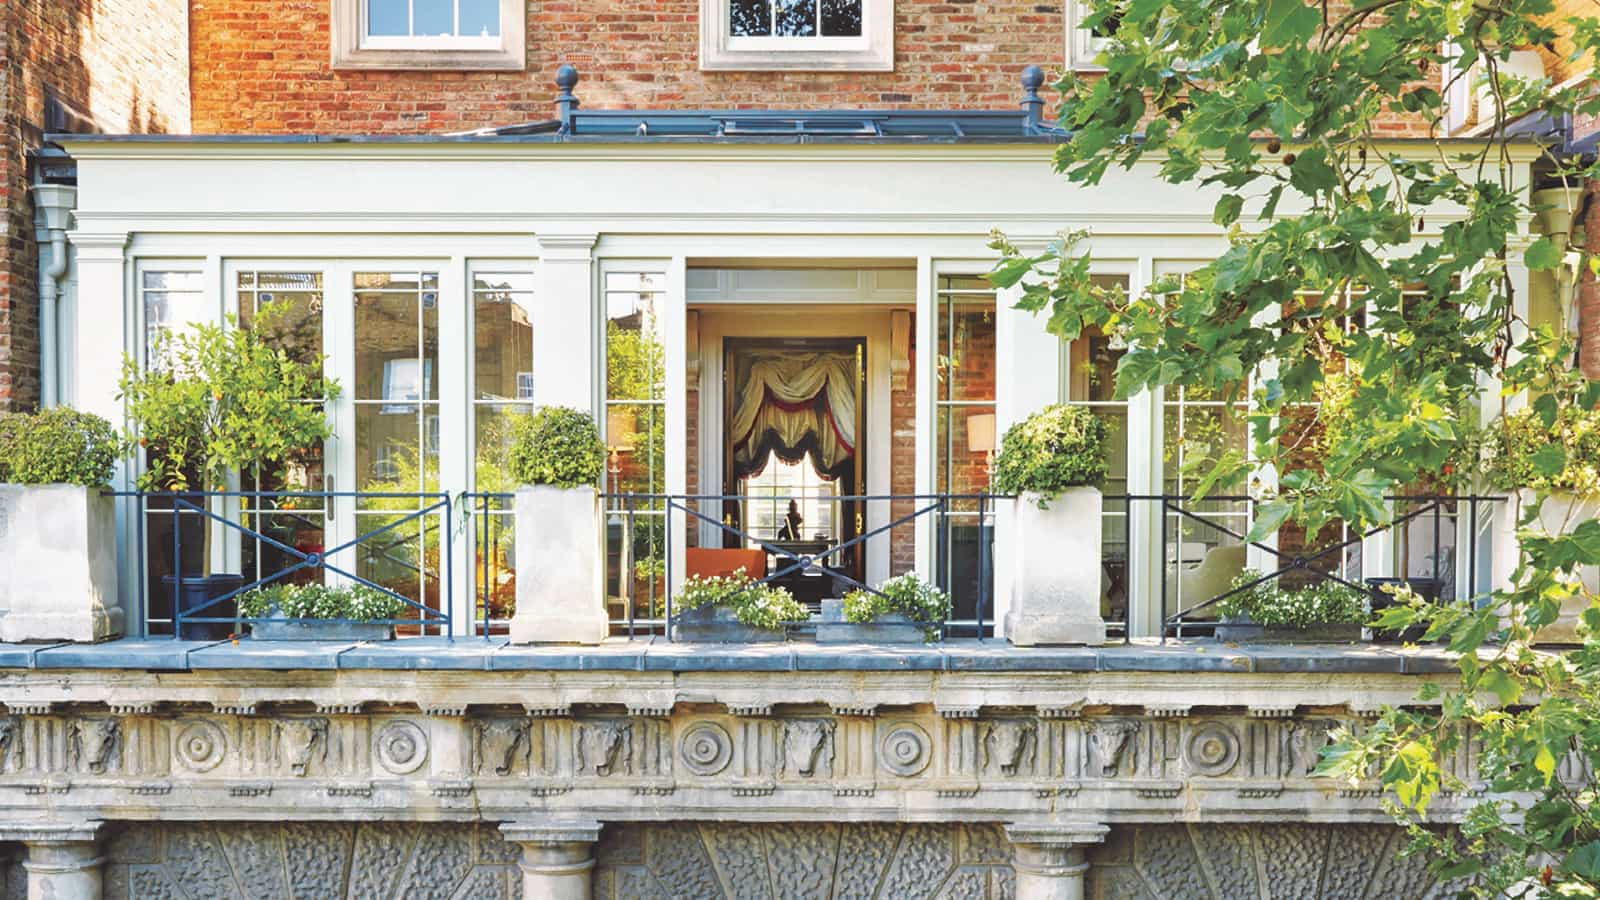 Orangery Built on second storey of London Townhouse